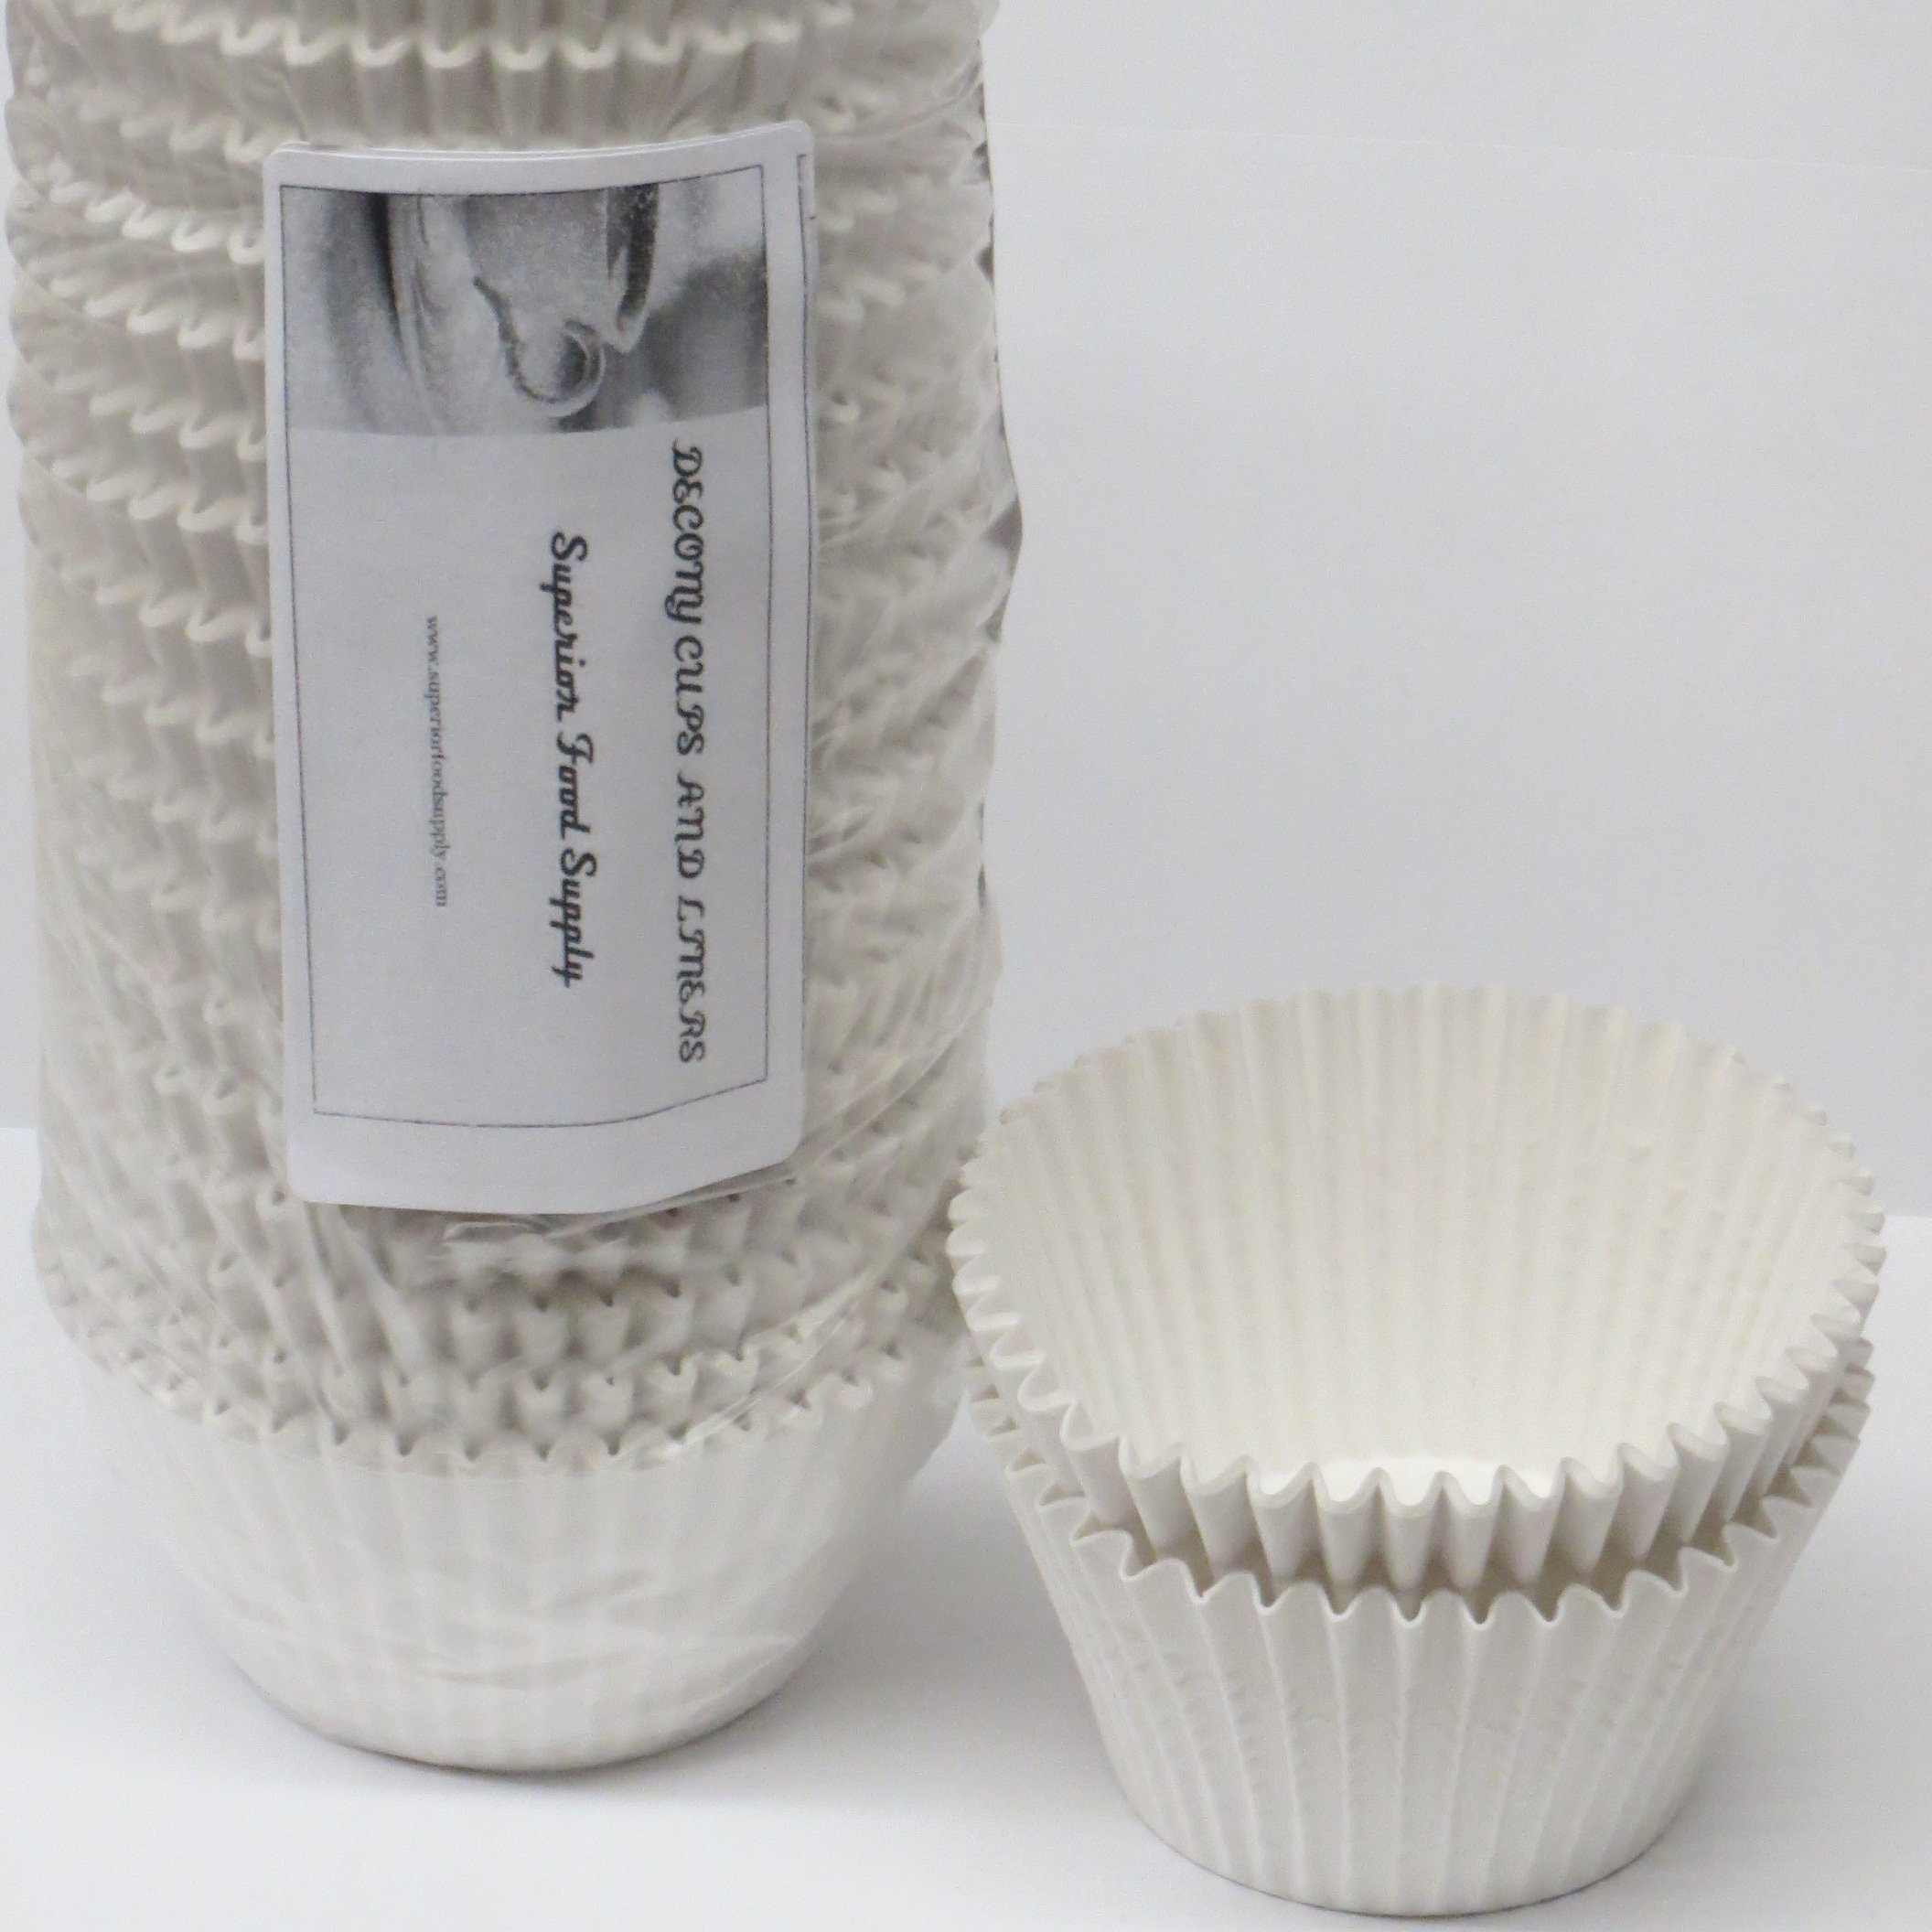 Decony White Jumbo Cupcake Muffin Baking Cup Liners size - 2 1/4'' x 1 7/8'' = 6'' - appx. 500 pack